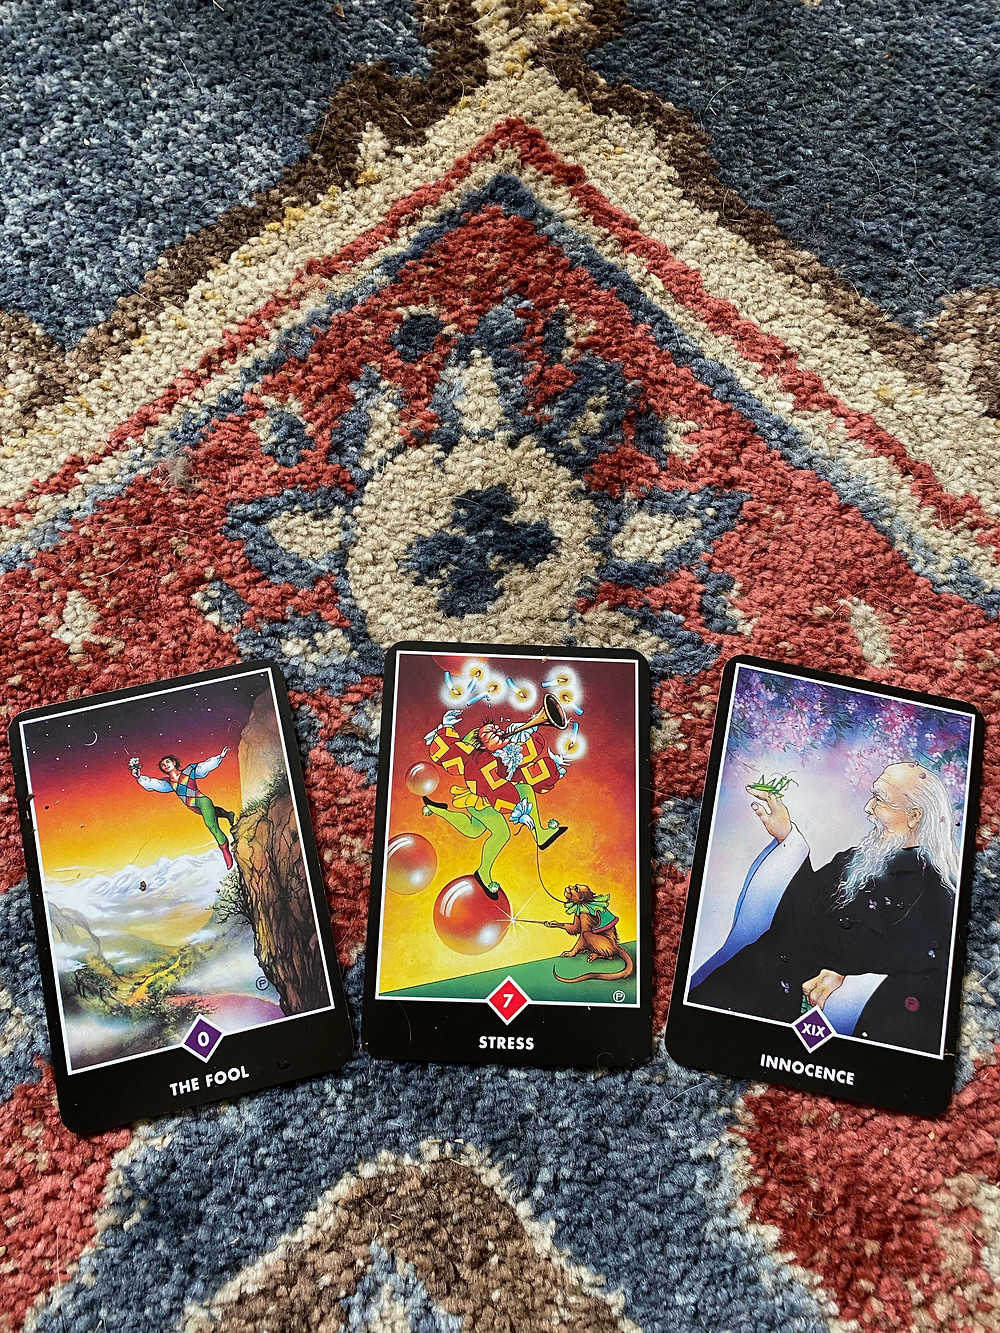 Taro cards depicting the Fool, Stress, and the Sage